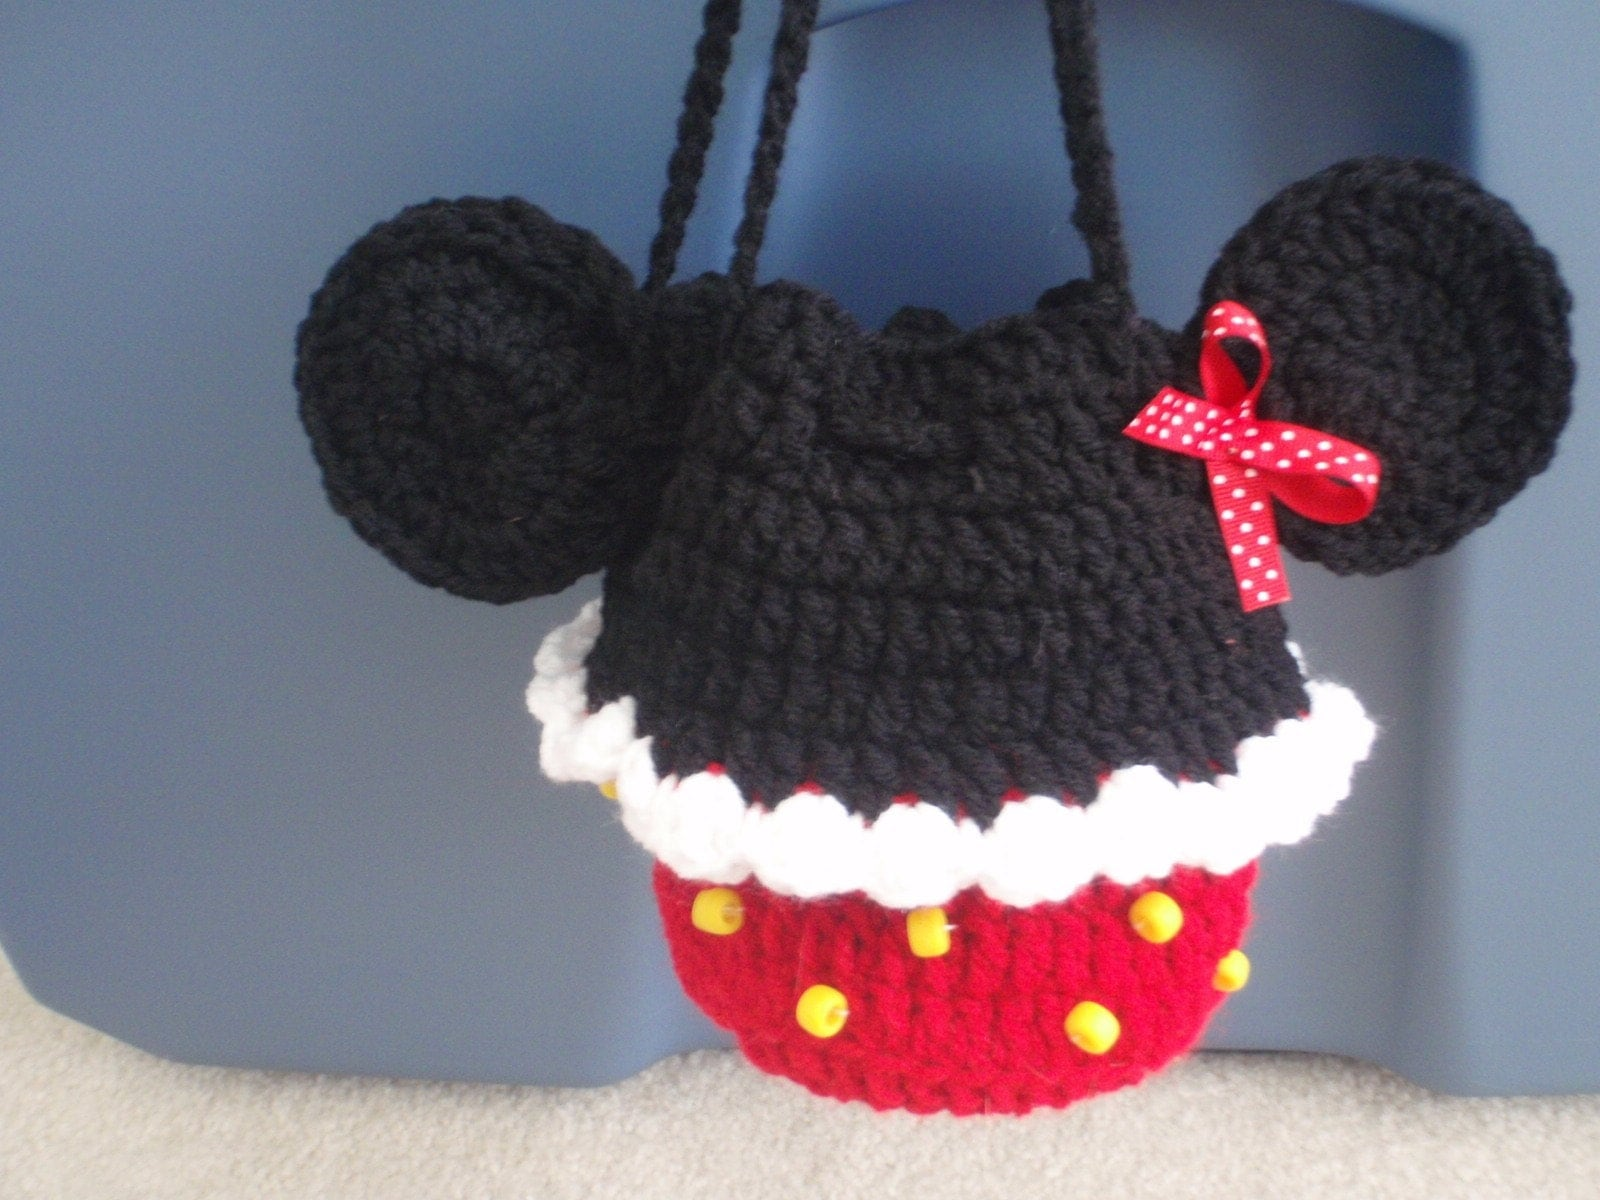 Crochet Purse For Child : crochet cupcake minnie mouse mickey purse bag children by Nora23